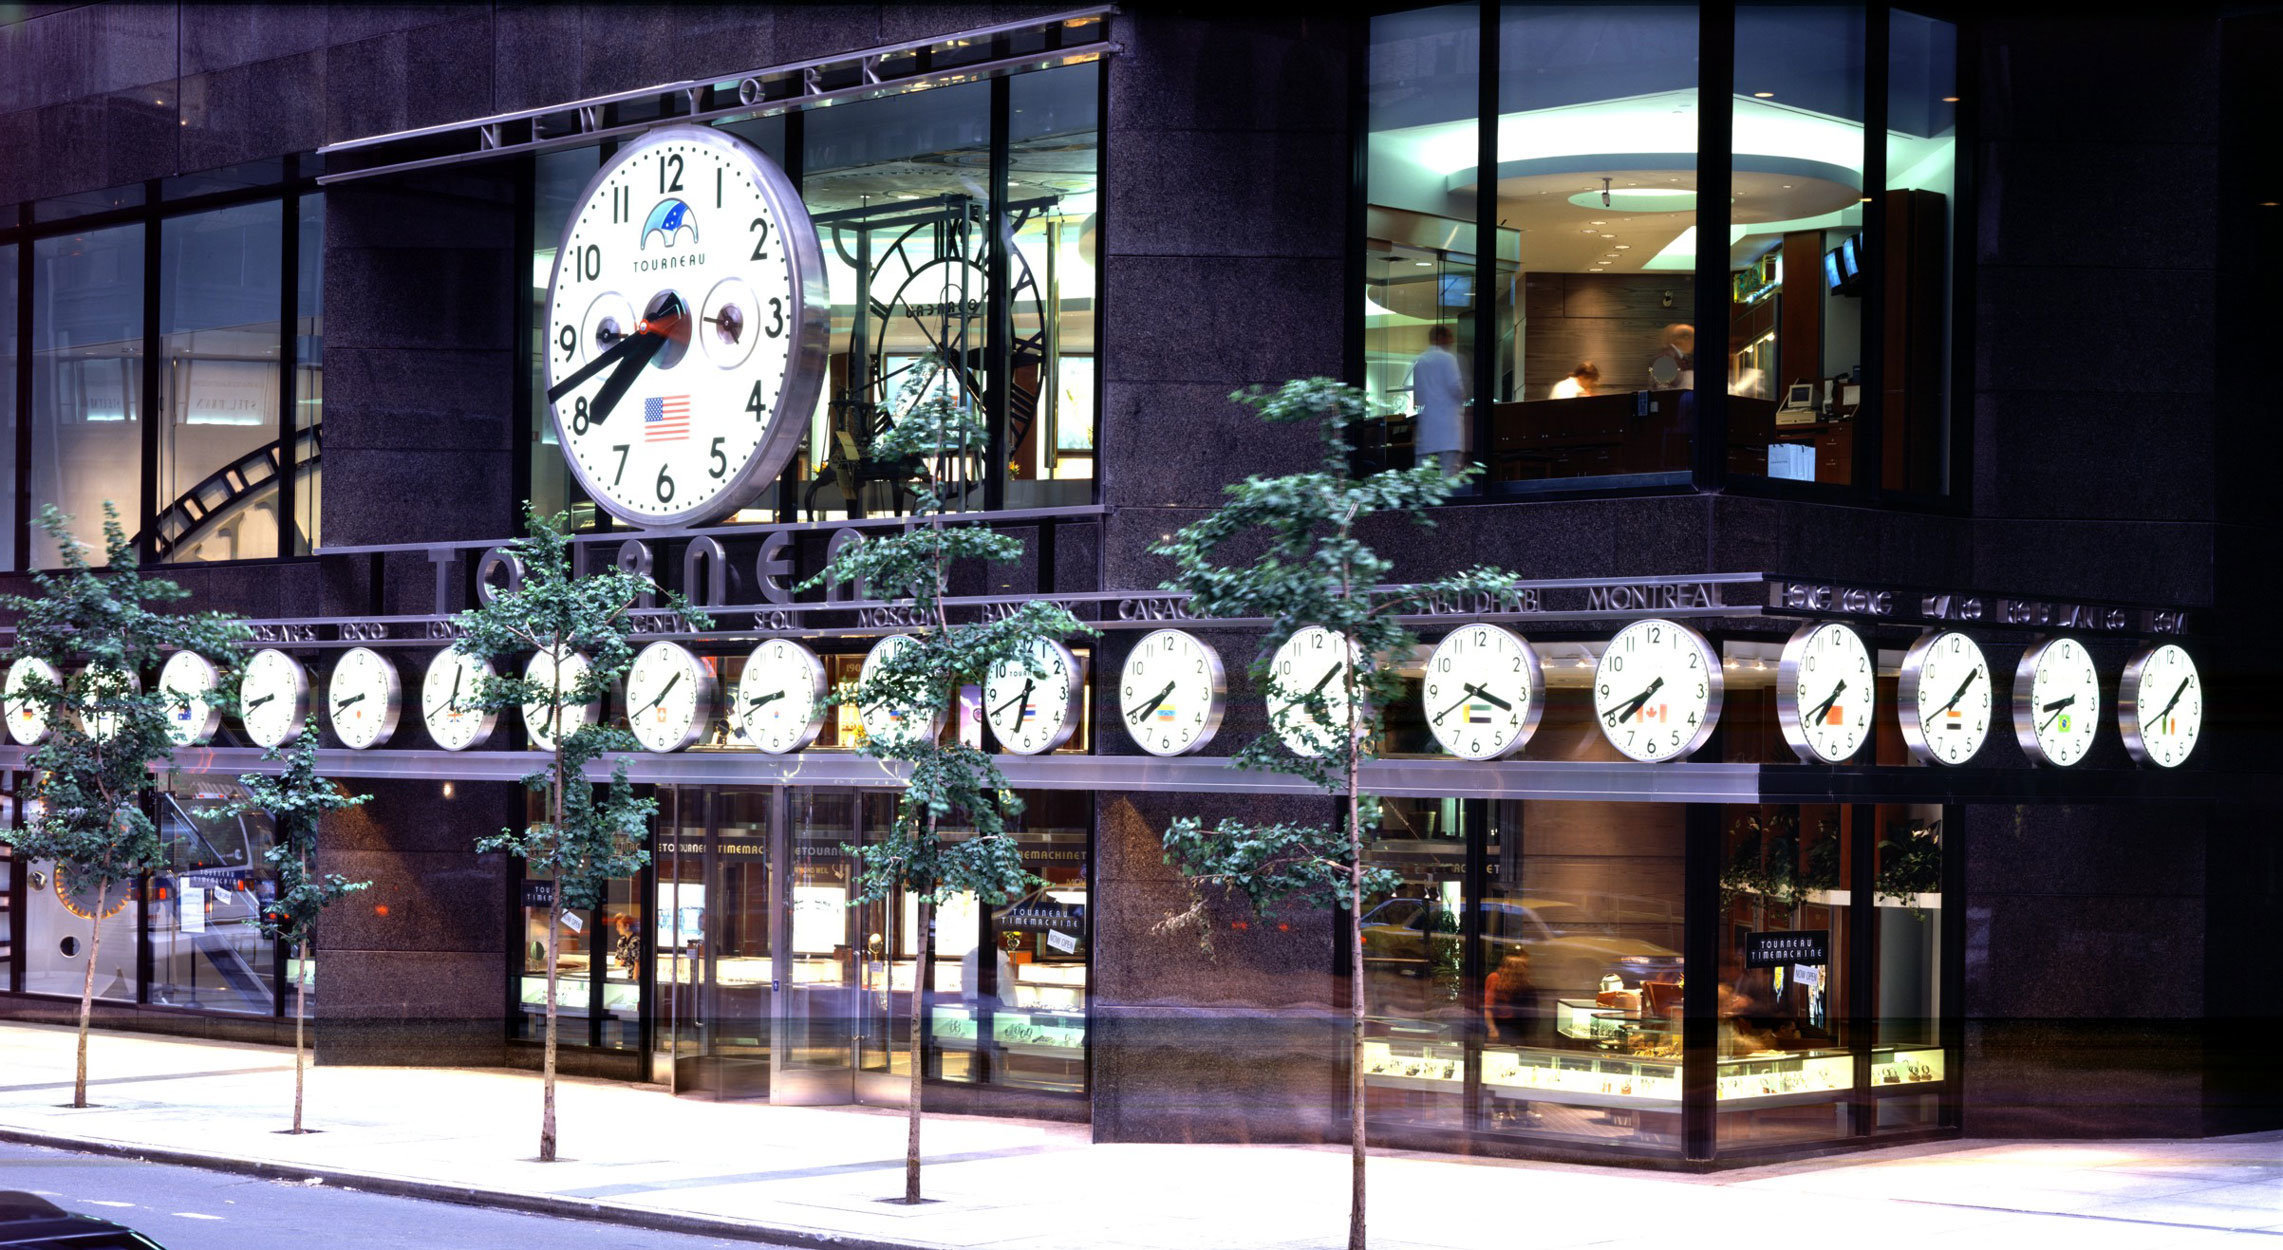 About Electric Time Company Building A Synchronous Clock Tourneau 57th And Madison New York City Multiple Zone Clocks